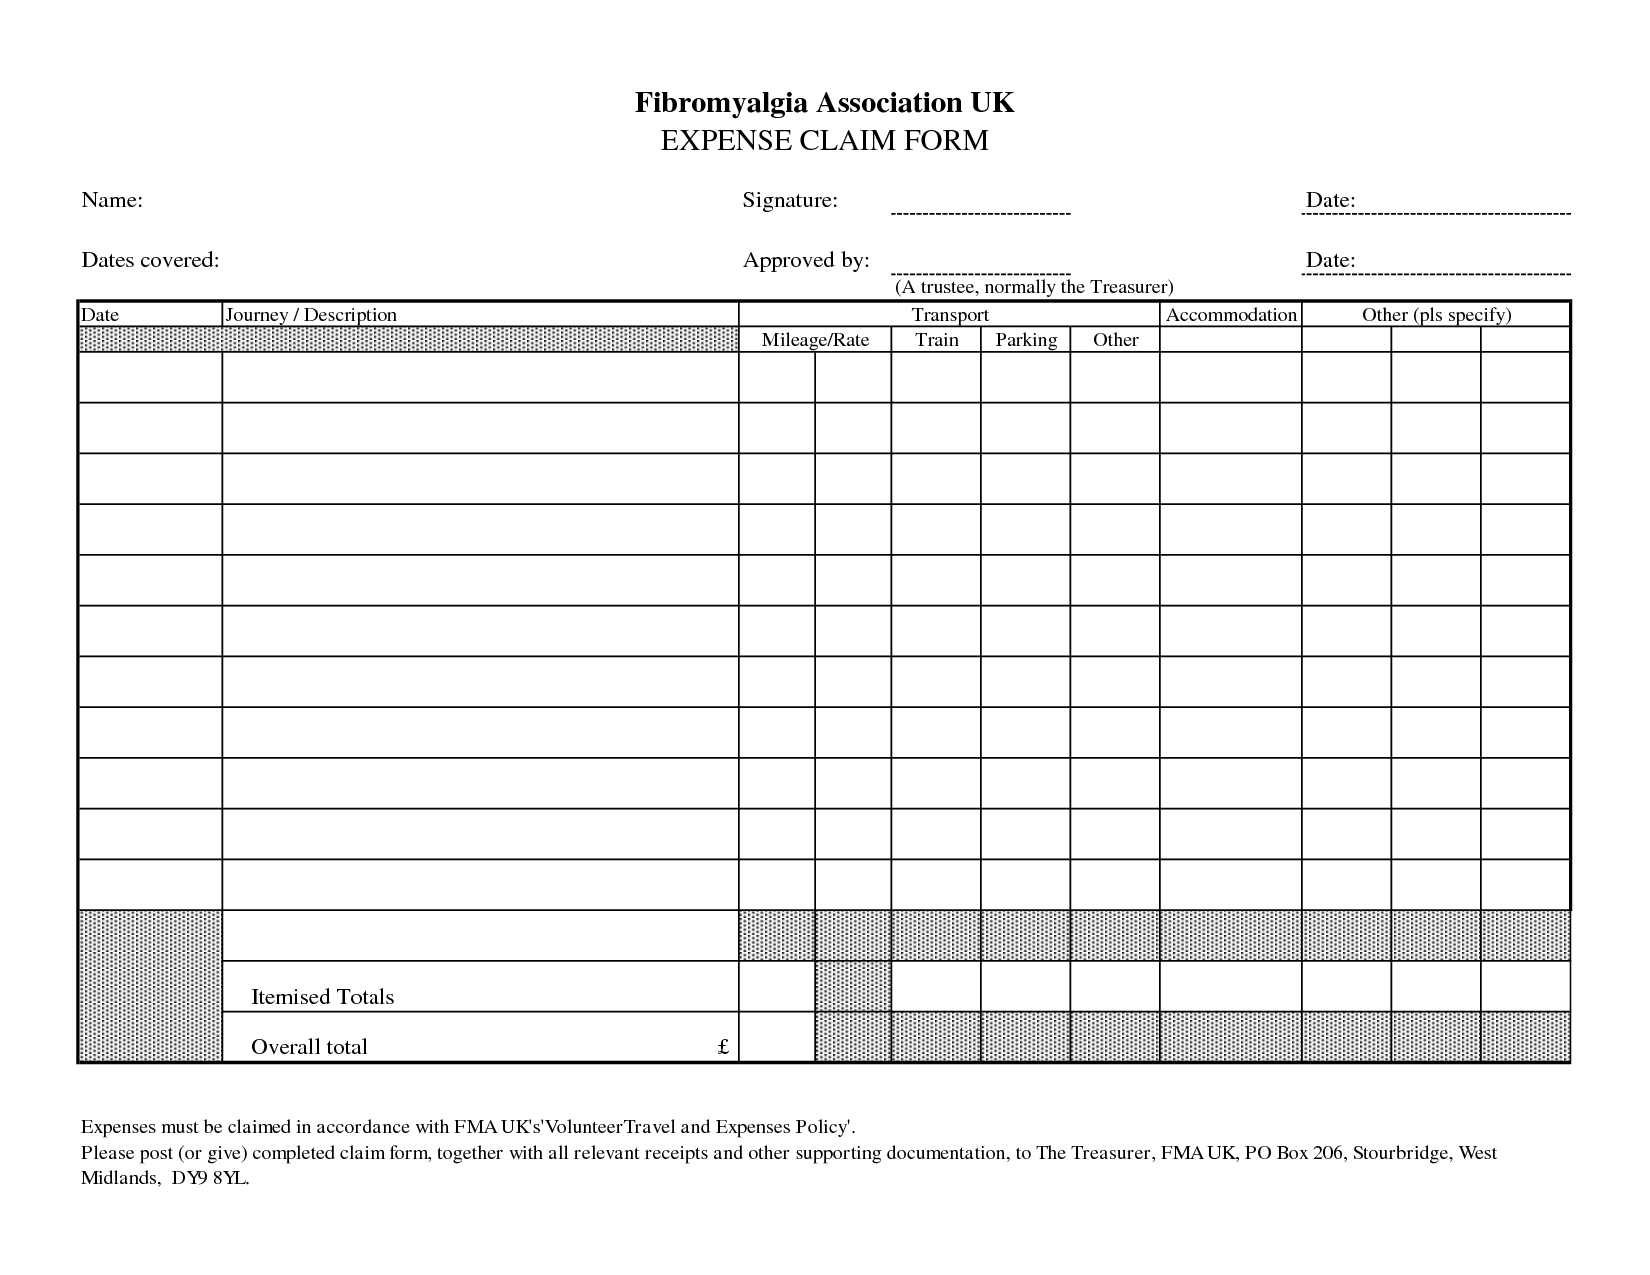 Bookkeeping Spreadsheet Using Microsoft Excel Accounting Spreadsheet Template Spreadsheet Templates for Busines Spreadsheet Templates for Busines Microsoft Excel Accounting Templates Download